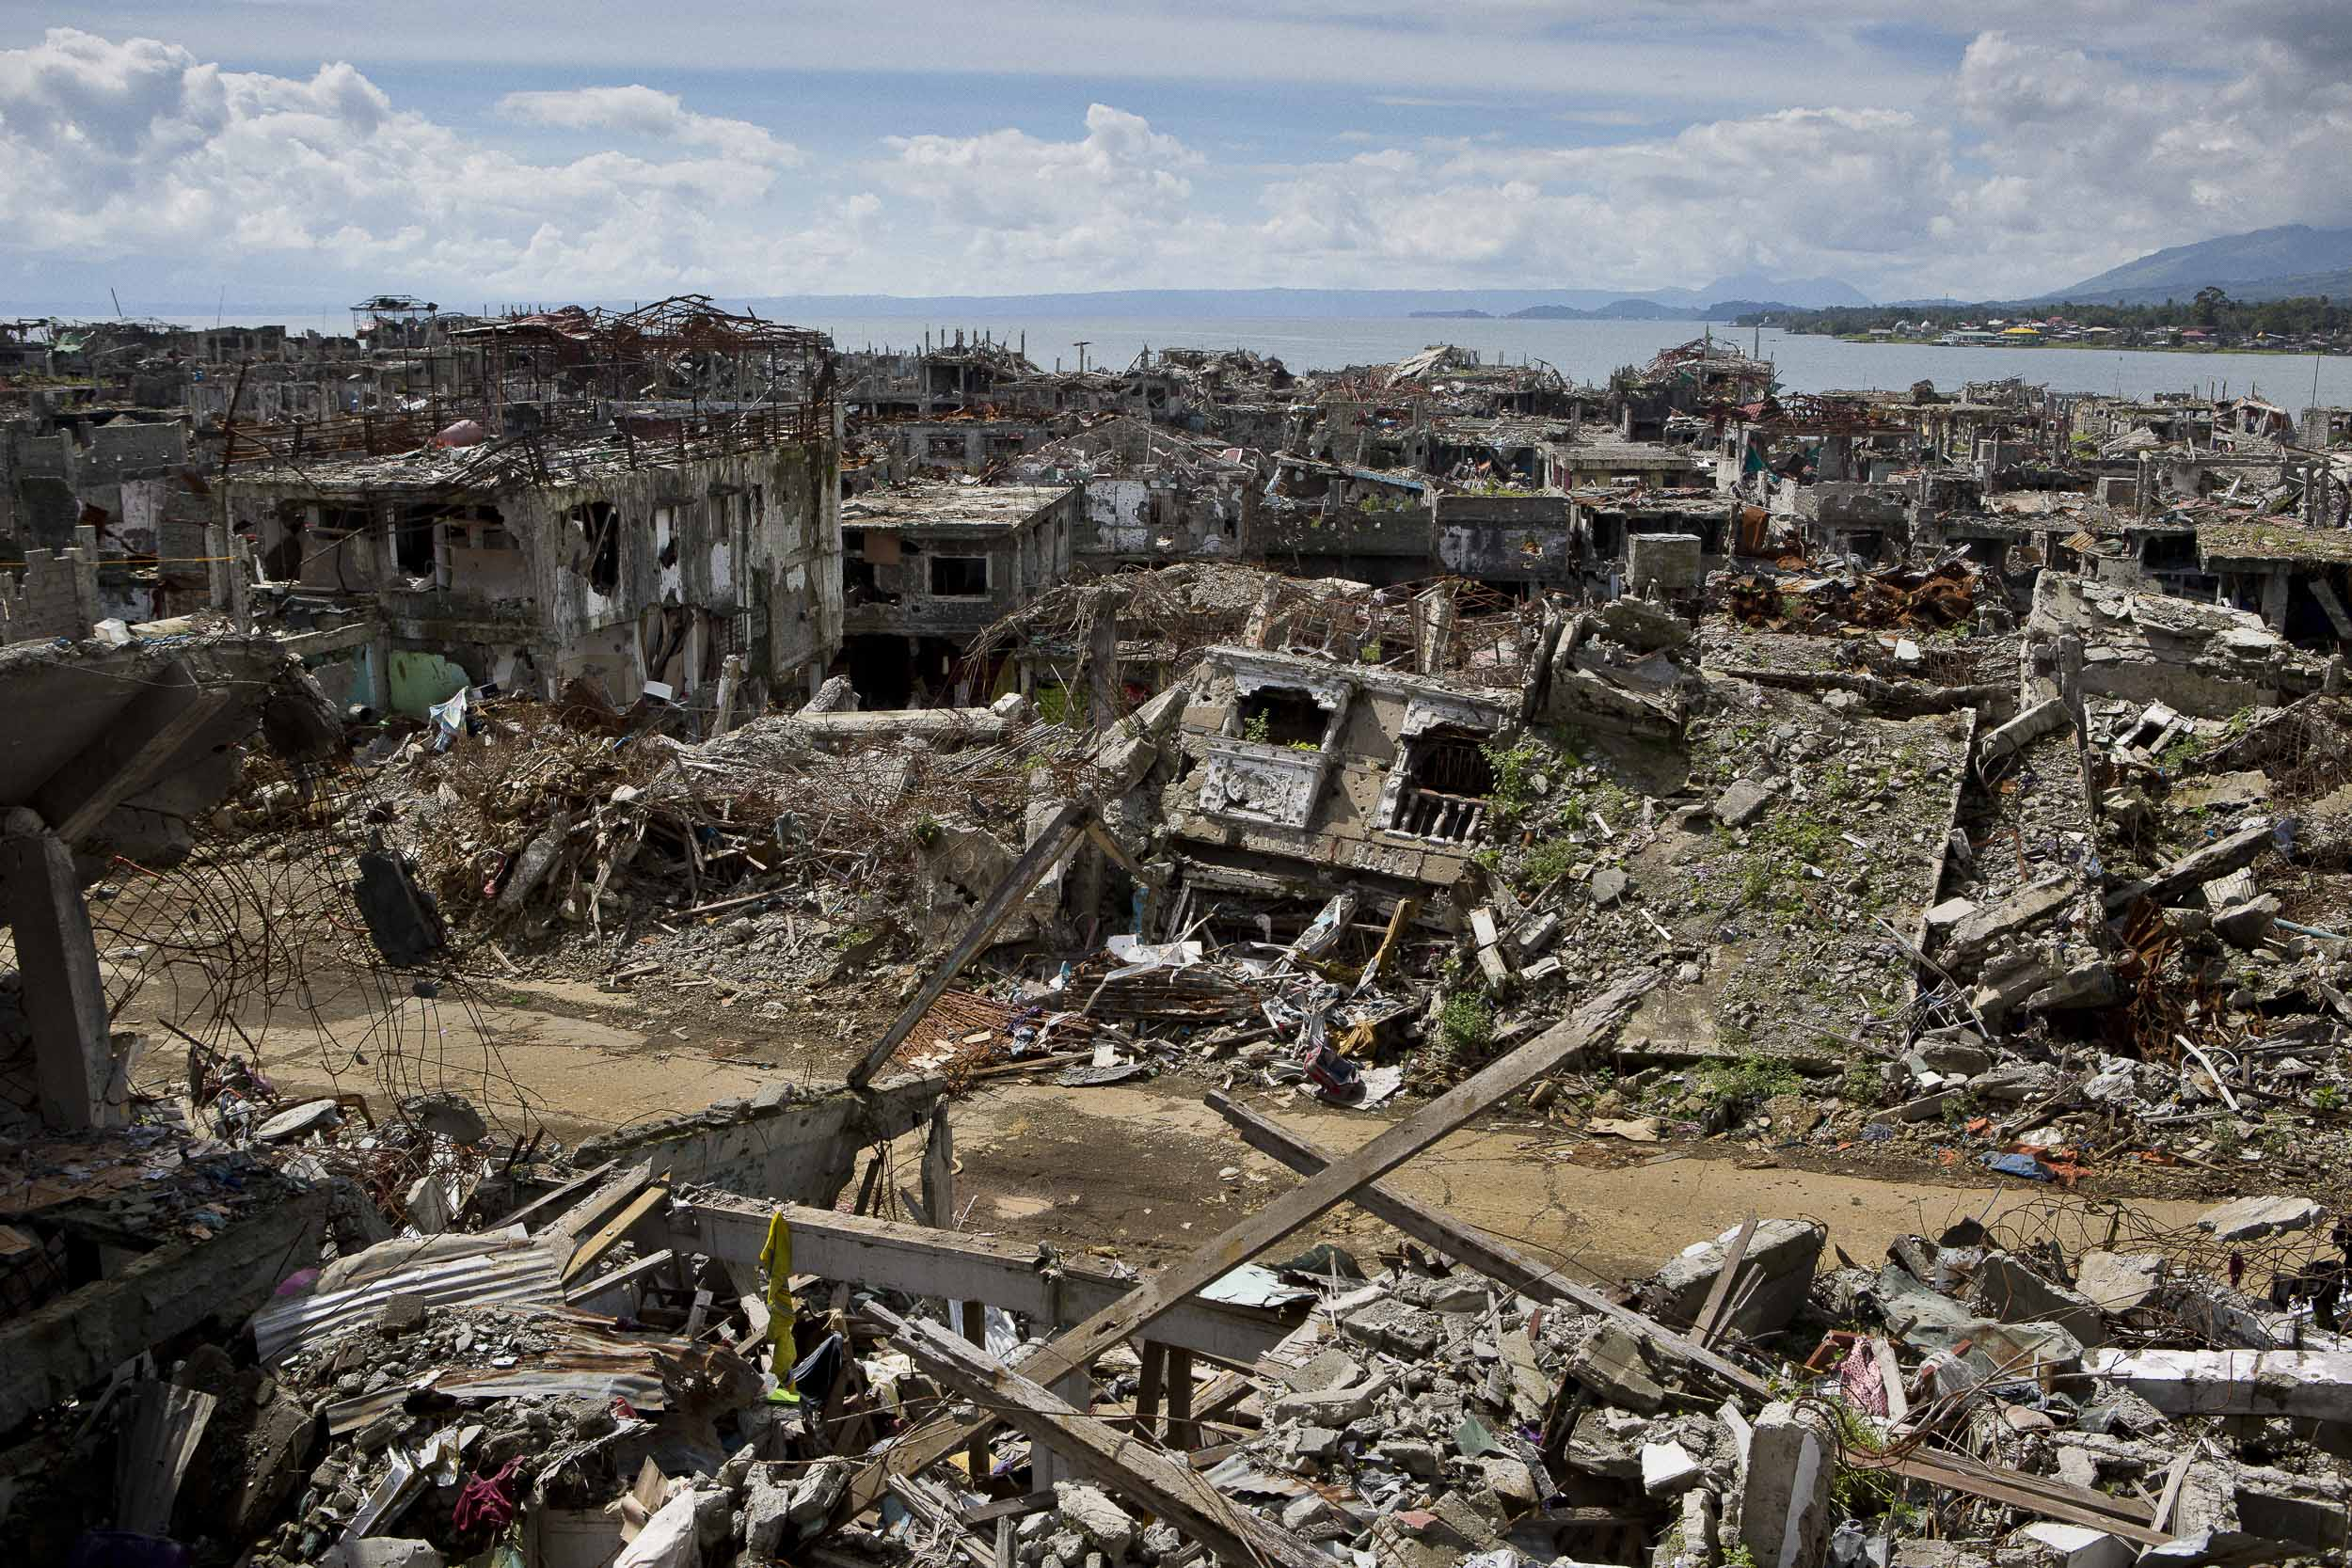 The view from the Jameo Dansalan mosque in Marawi, Philipines shows the severity of the devastation inflicted by the 5 month siege that engulfed the city.